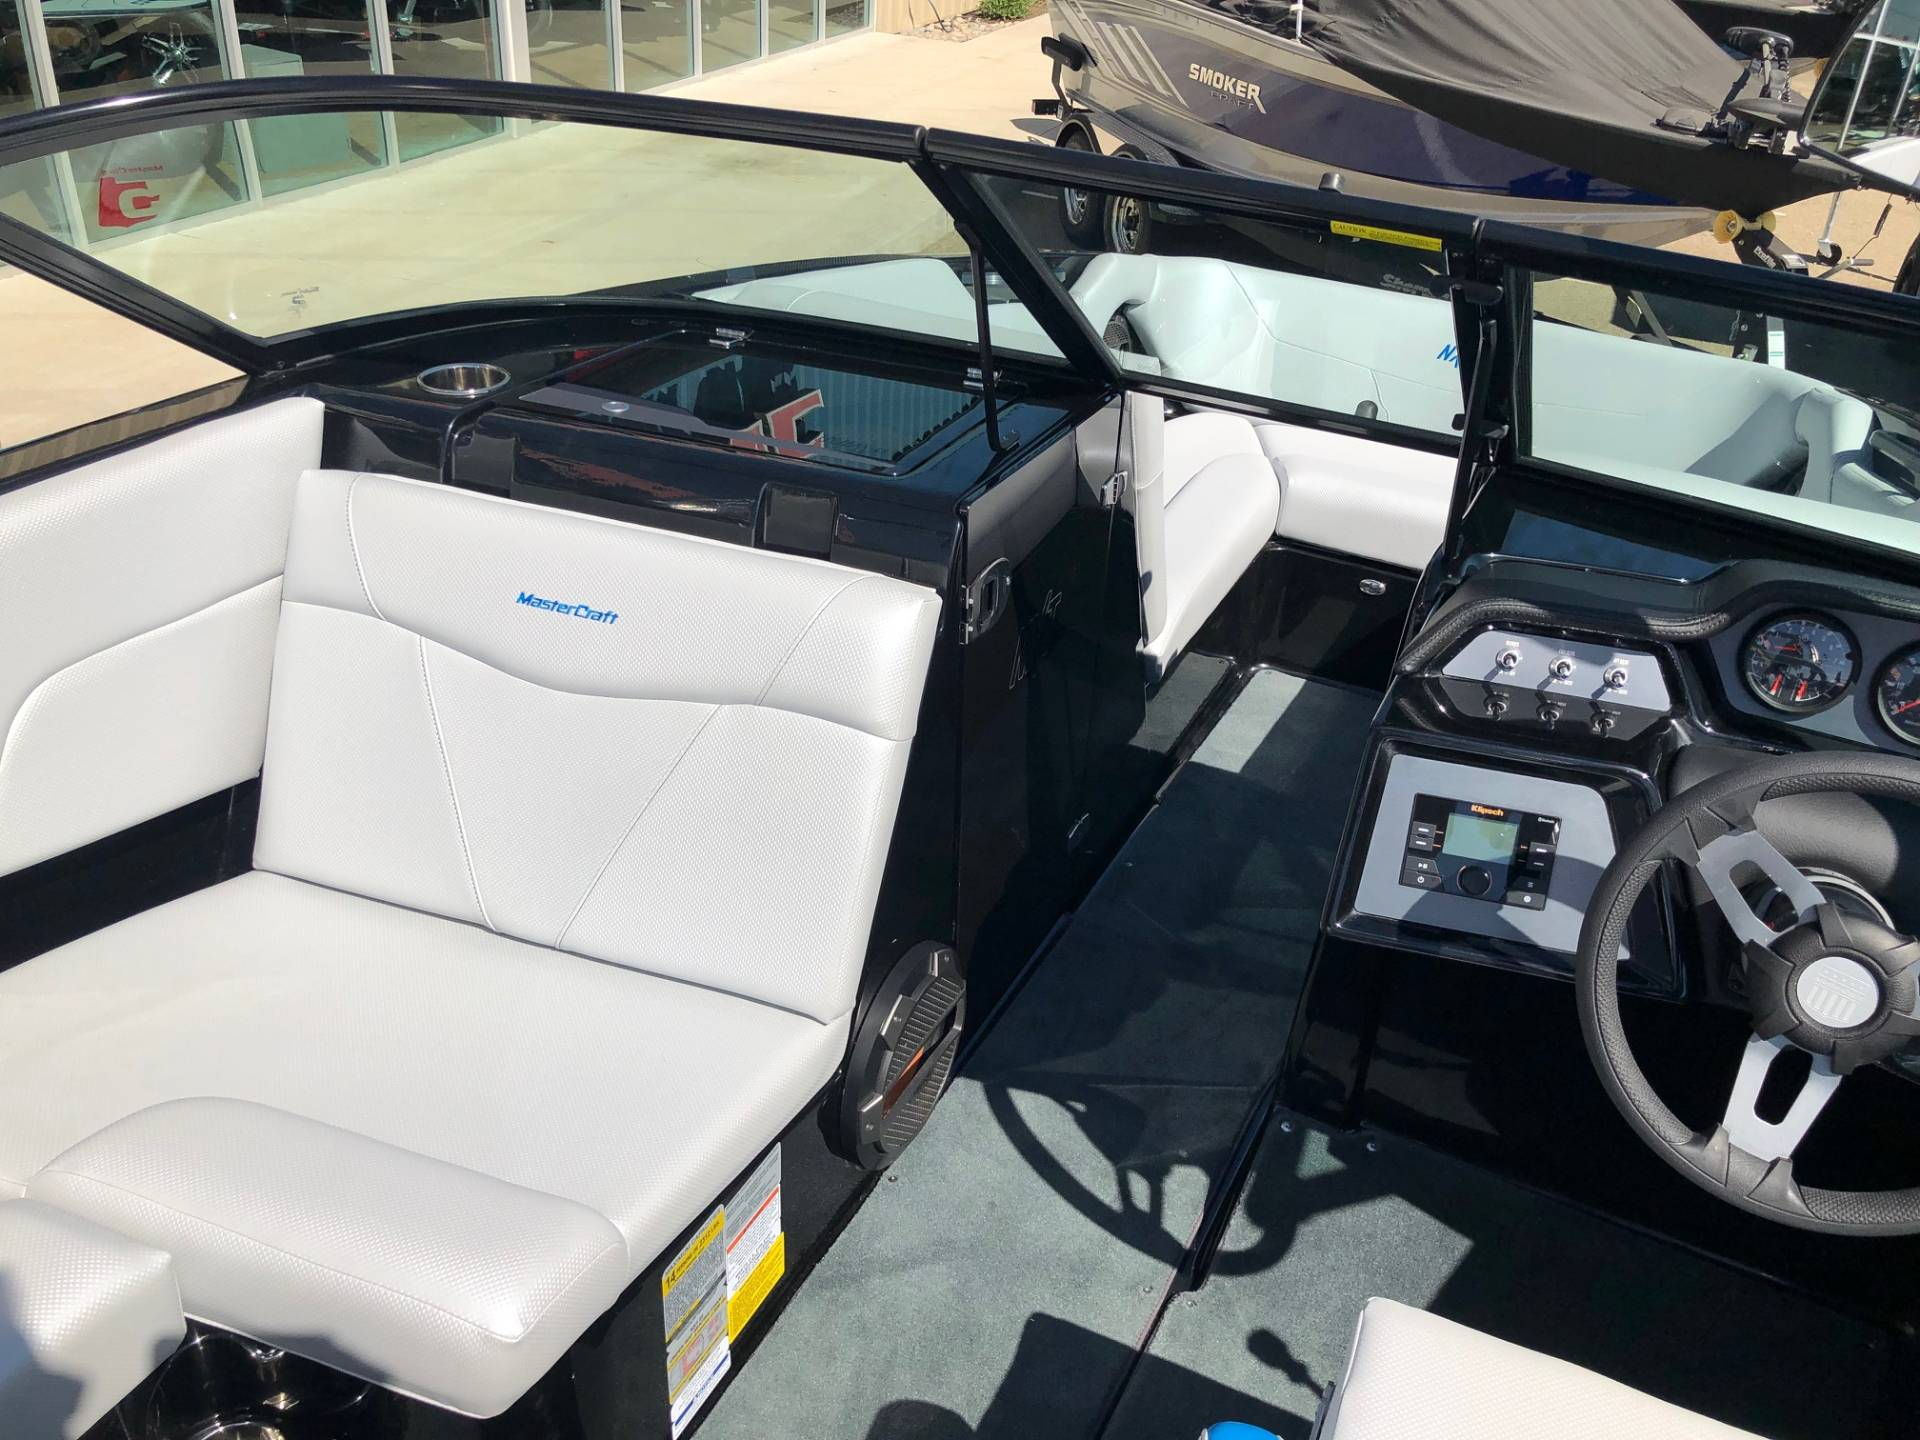 2020 Mastercraft NXT22 in Madera, California - Photo 9